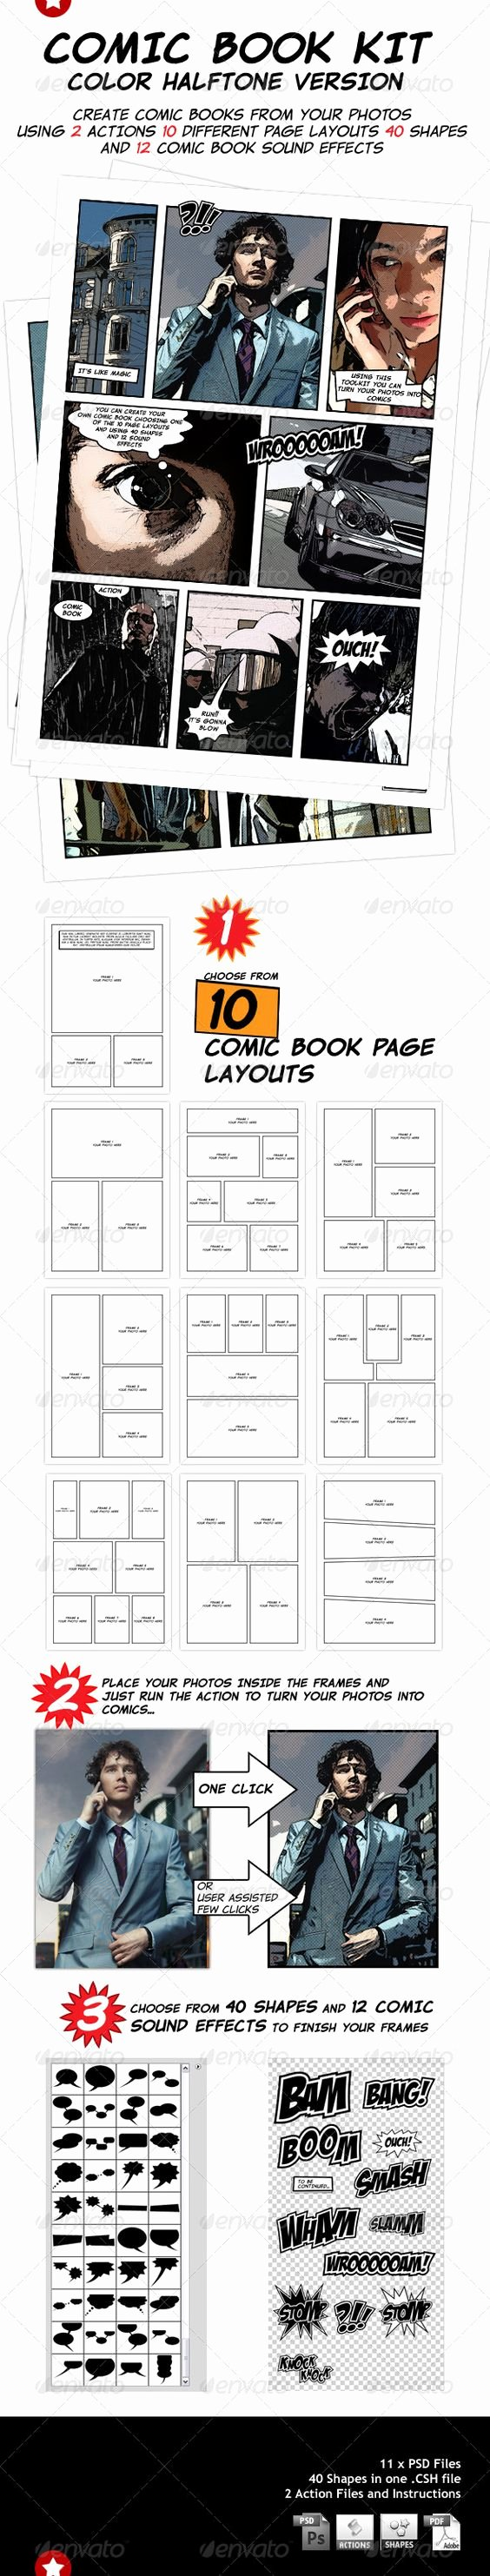 Comic Book Template Photoshop Beautiful You Can Choose From 10 Ic Book Page Layout Templates